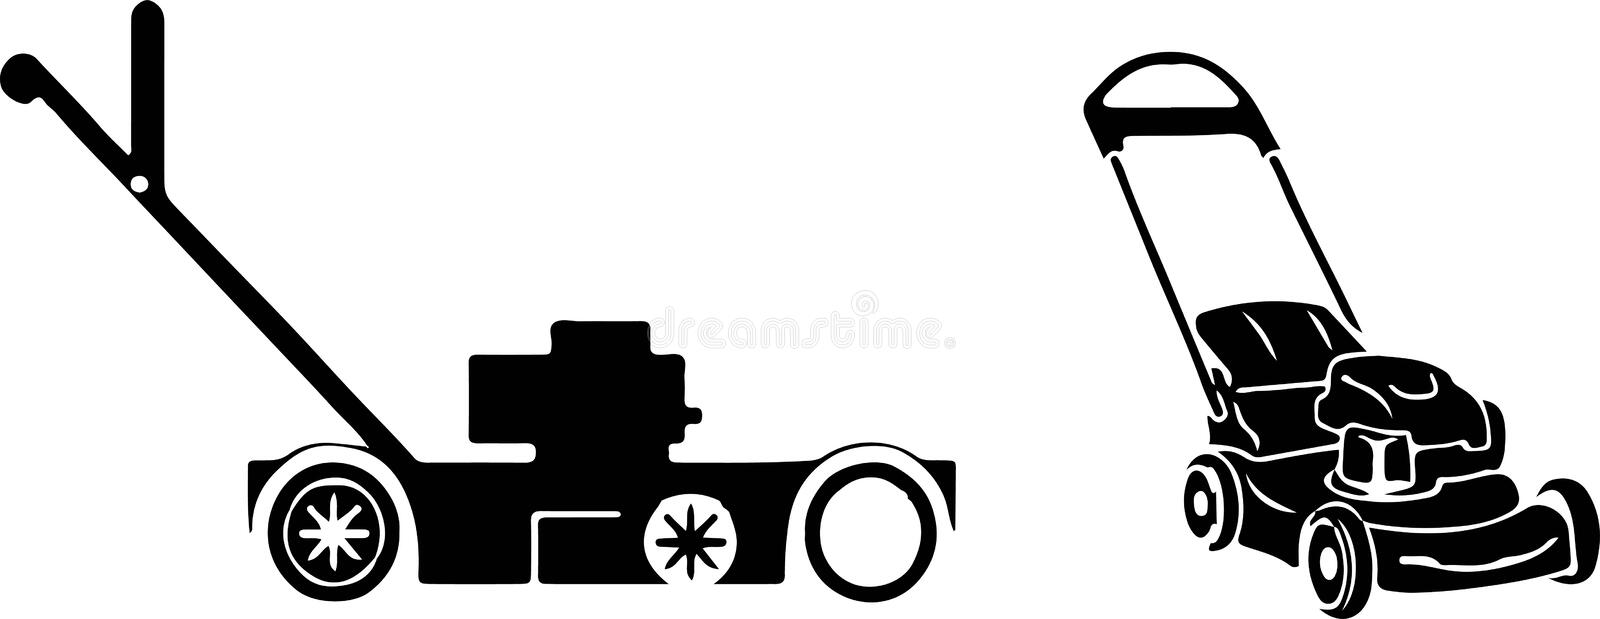 Lawn mower icon on white background. Lawn,machine,mower royalty free illustration